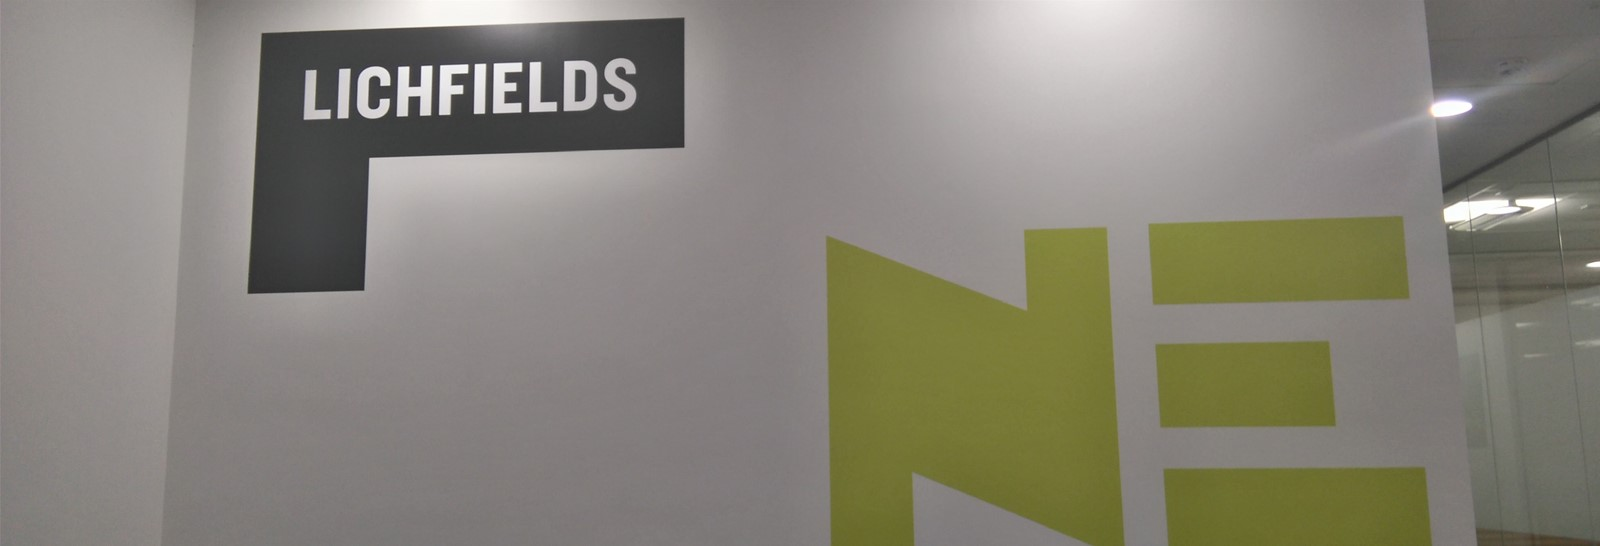 Wall graphics for Lichfields